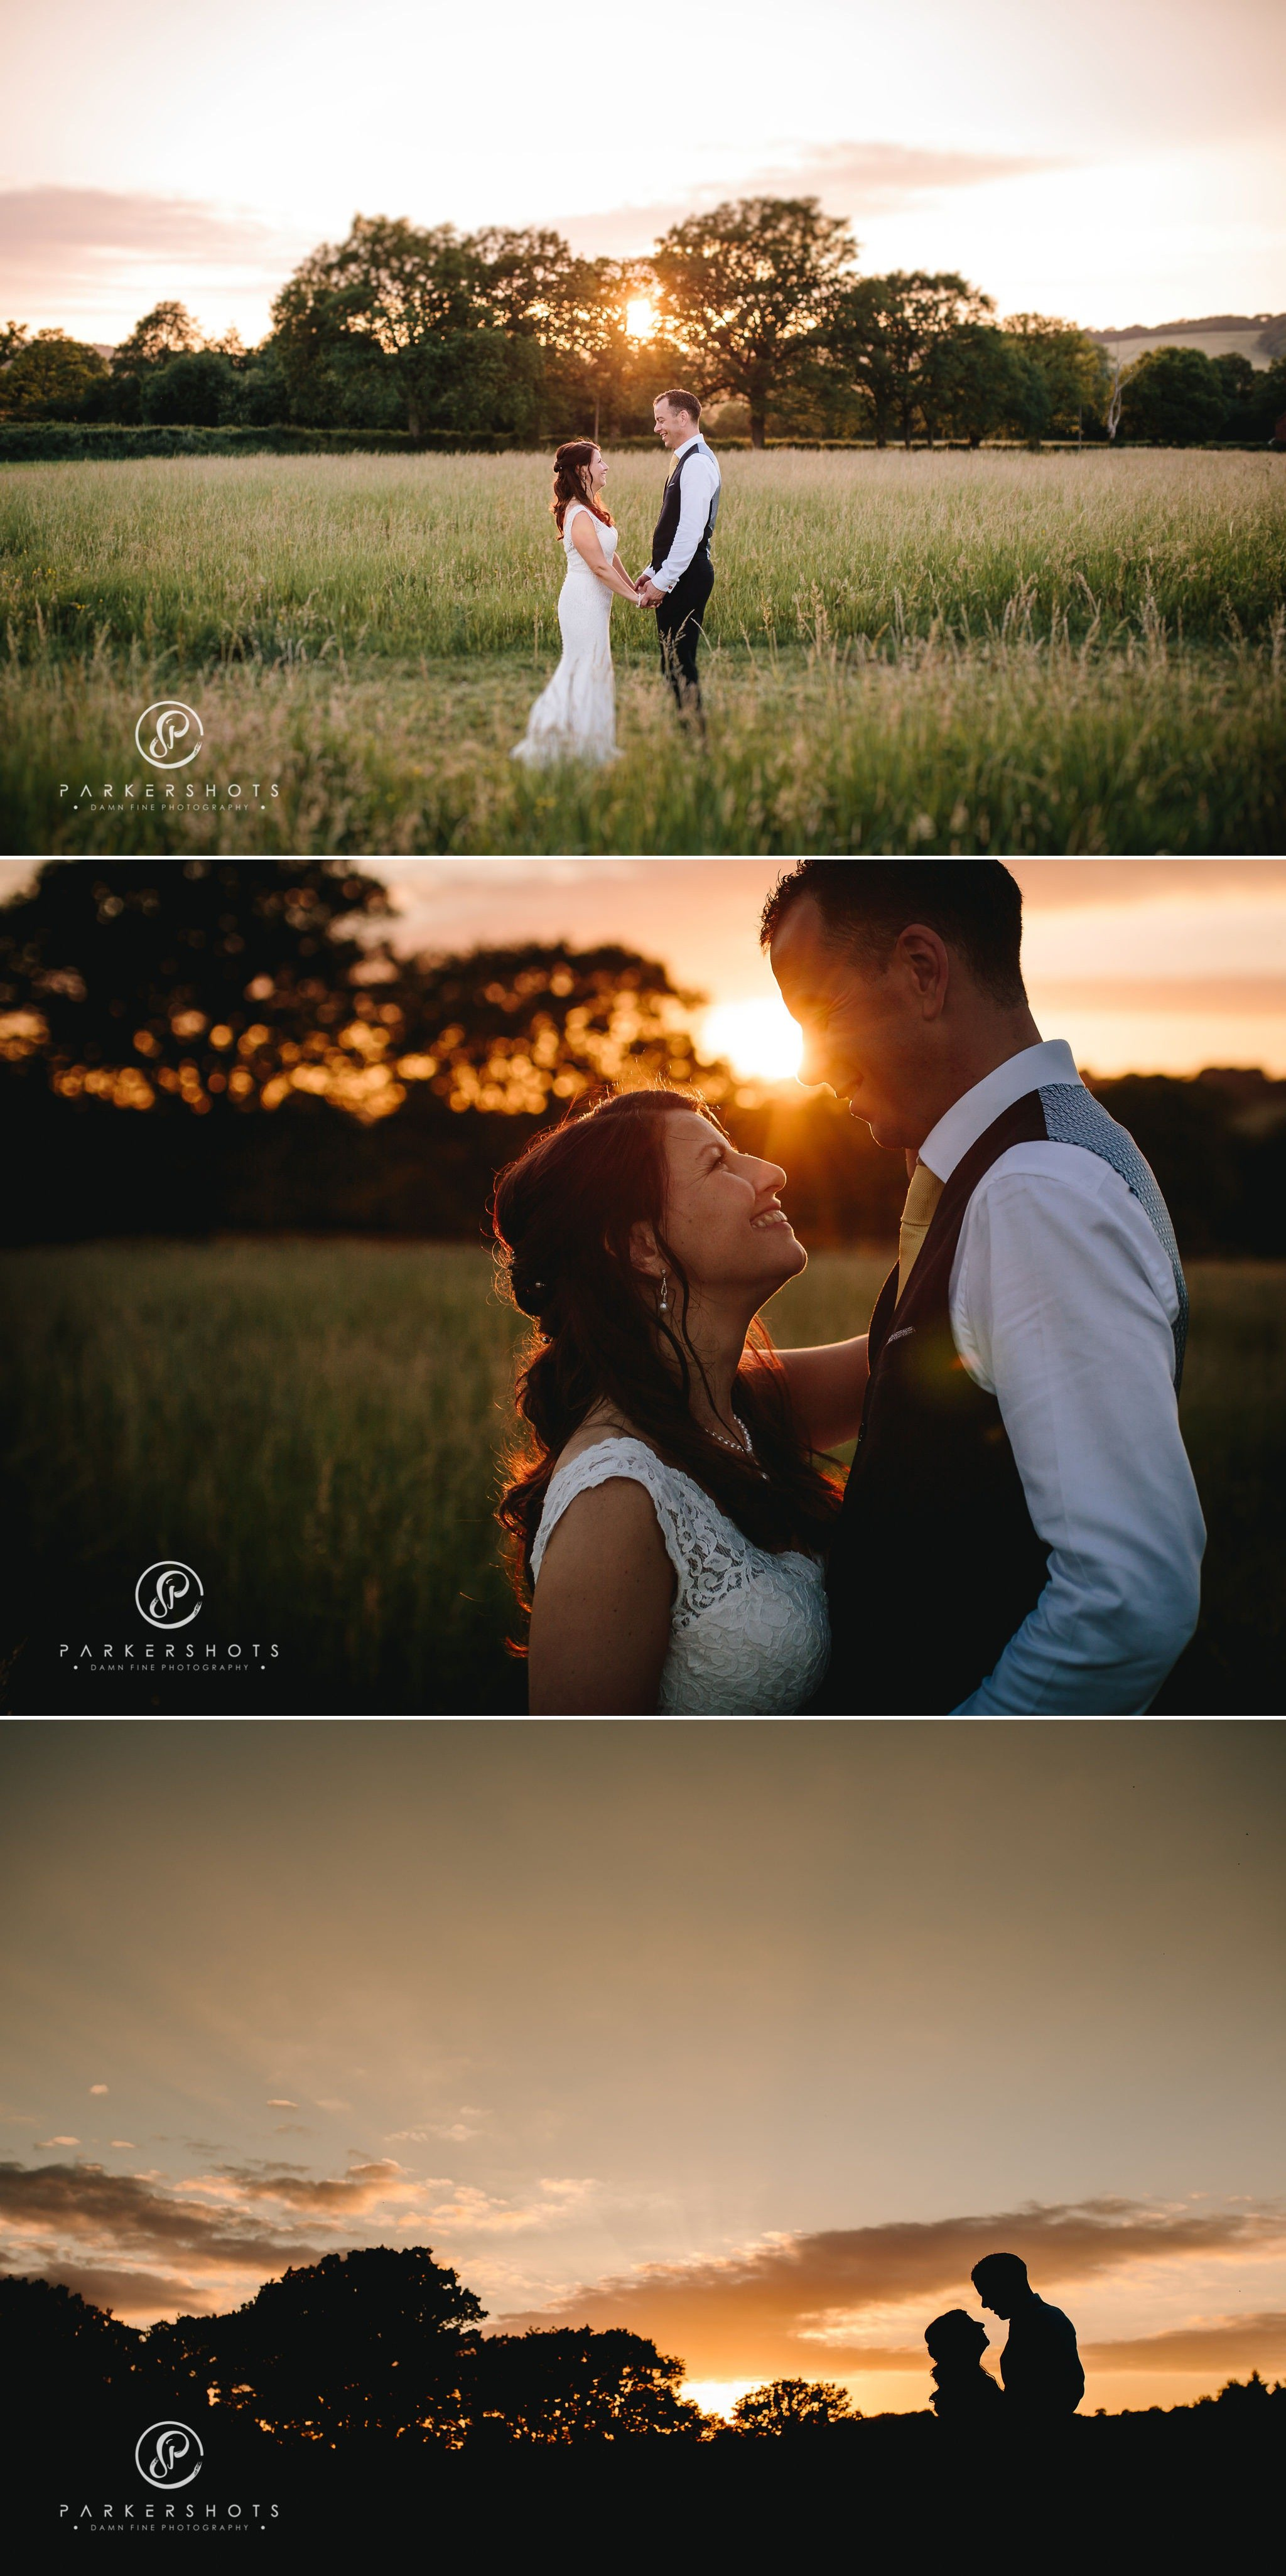 Sunset wedding photography at Chafford Park